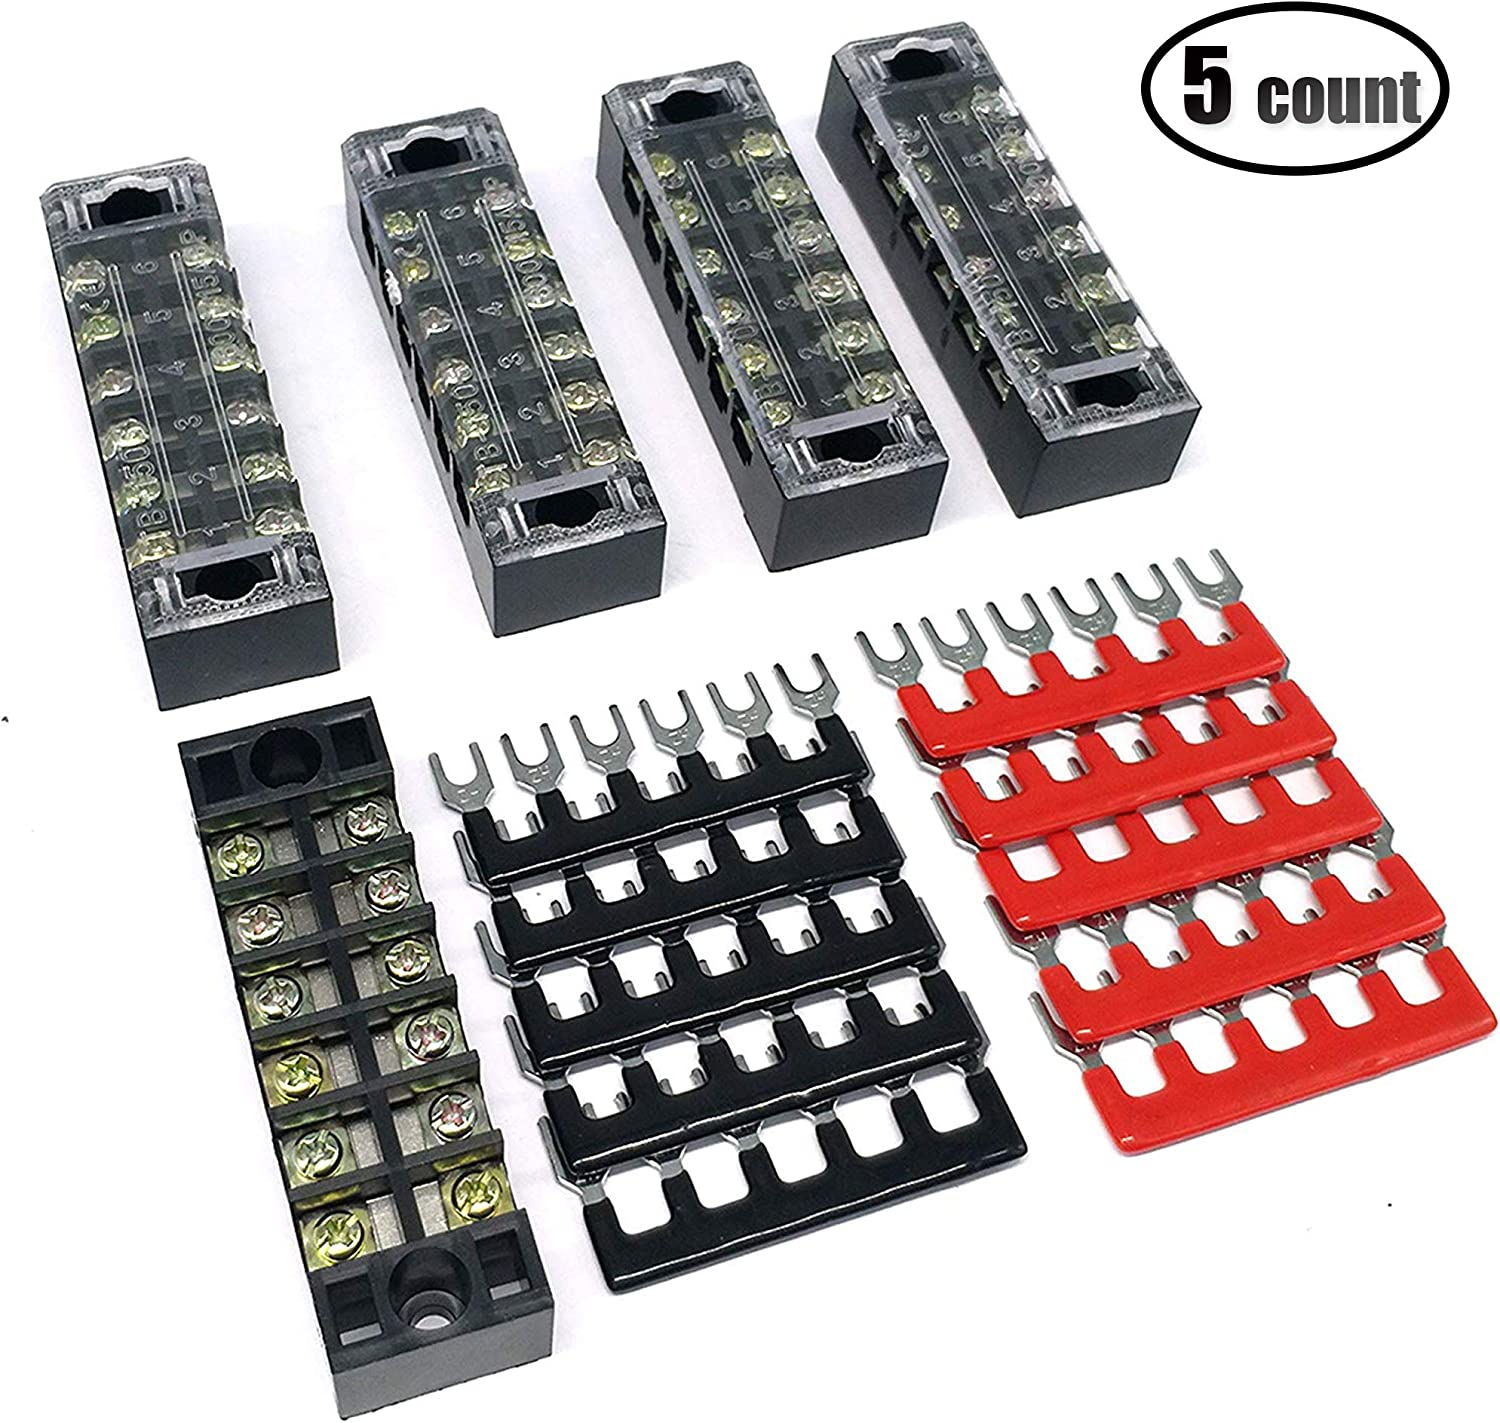 IZTOSS 5 Positions 600V\15Amp terminal block kits Terminals Included Red and Black 10 Pcs